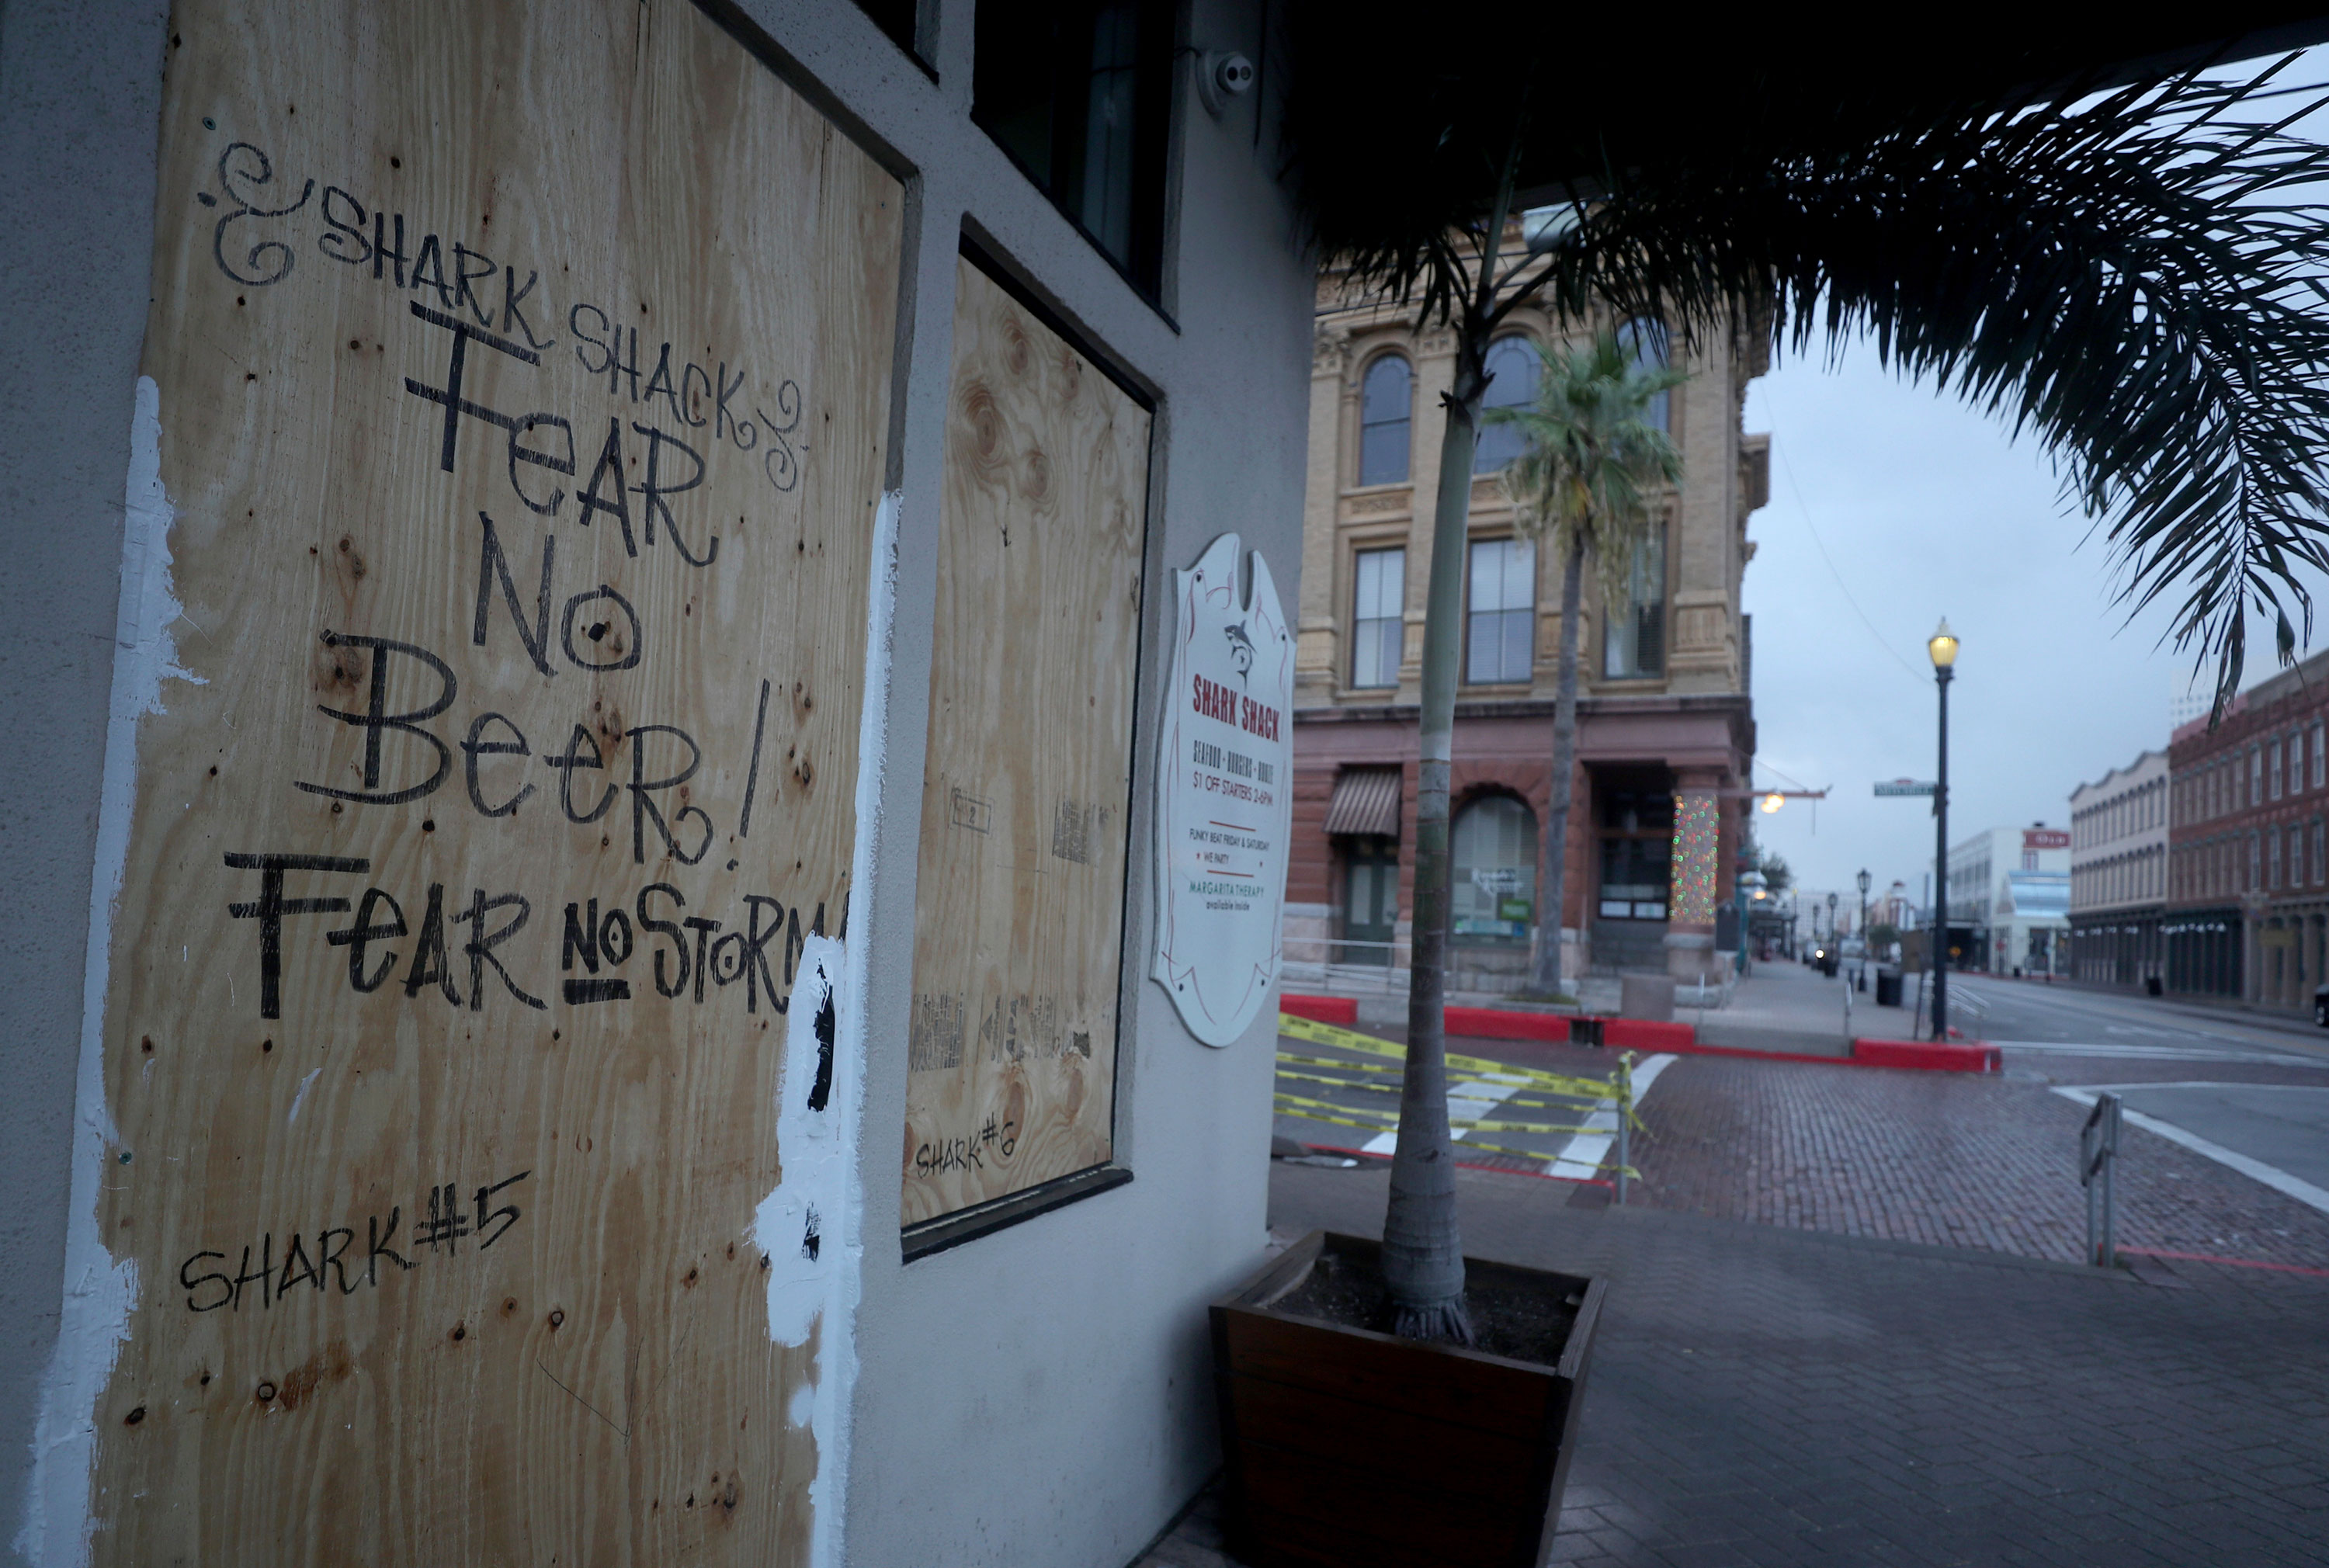 The Shark Shack Beach Bar and Grill is boarded up on the nearly deserted Strand Street in Galveston, Texas, on Wednesday, August 26.